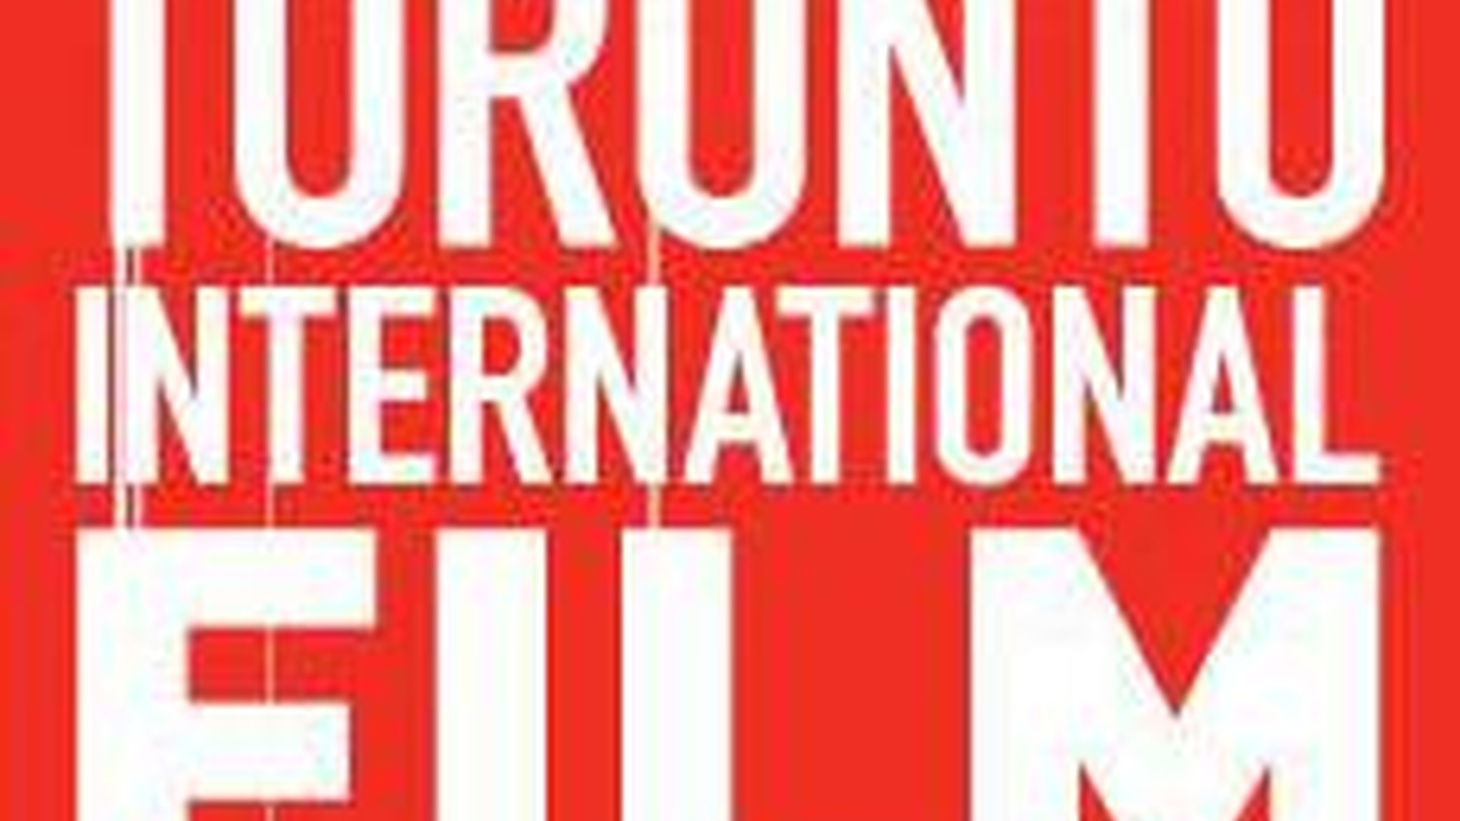 Many movies looking to be bought for distribution at the Toronto International Film Festival found buyers this year. John and Kim take an inventory of some of the deals struck so far and what it all says for the mood in the indie film world.